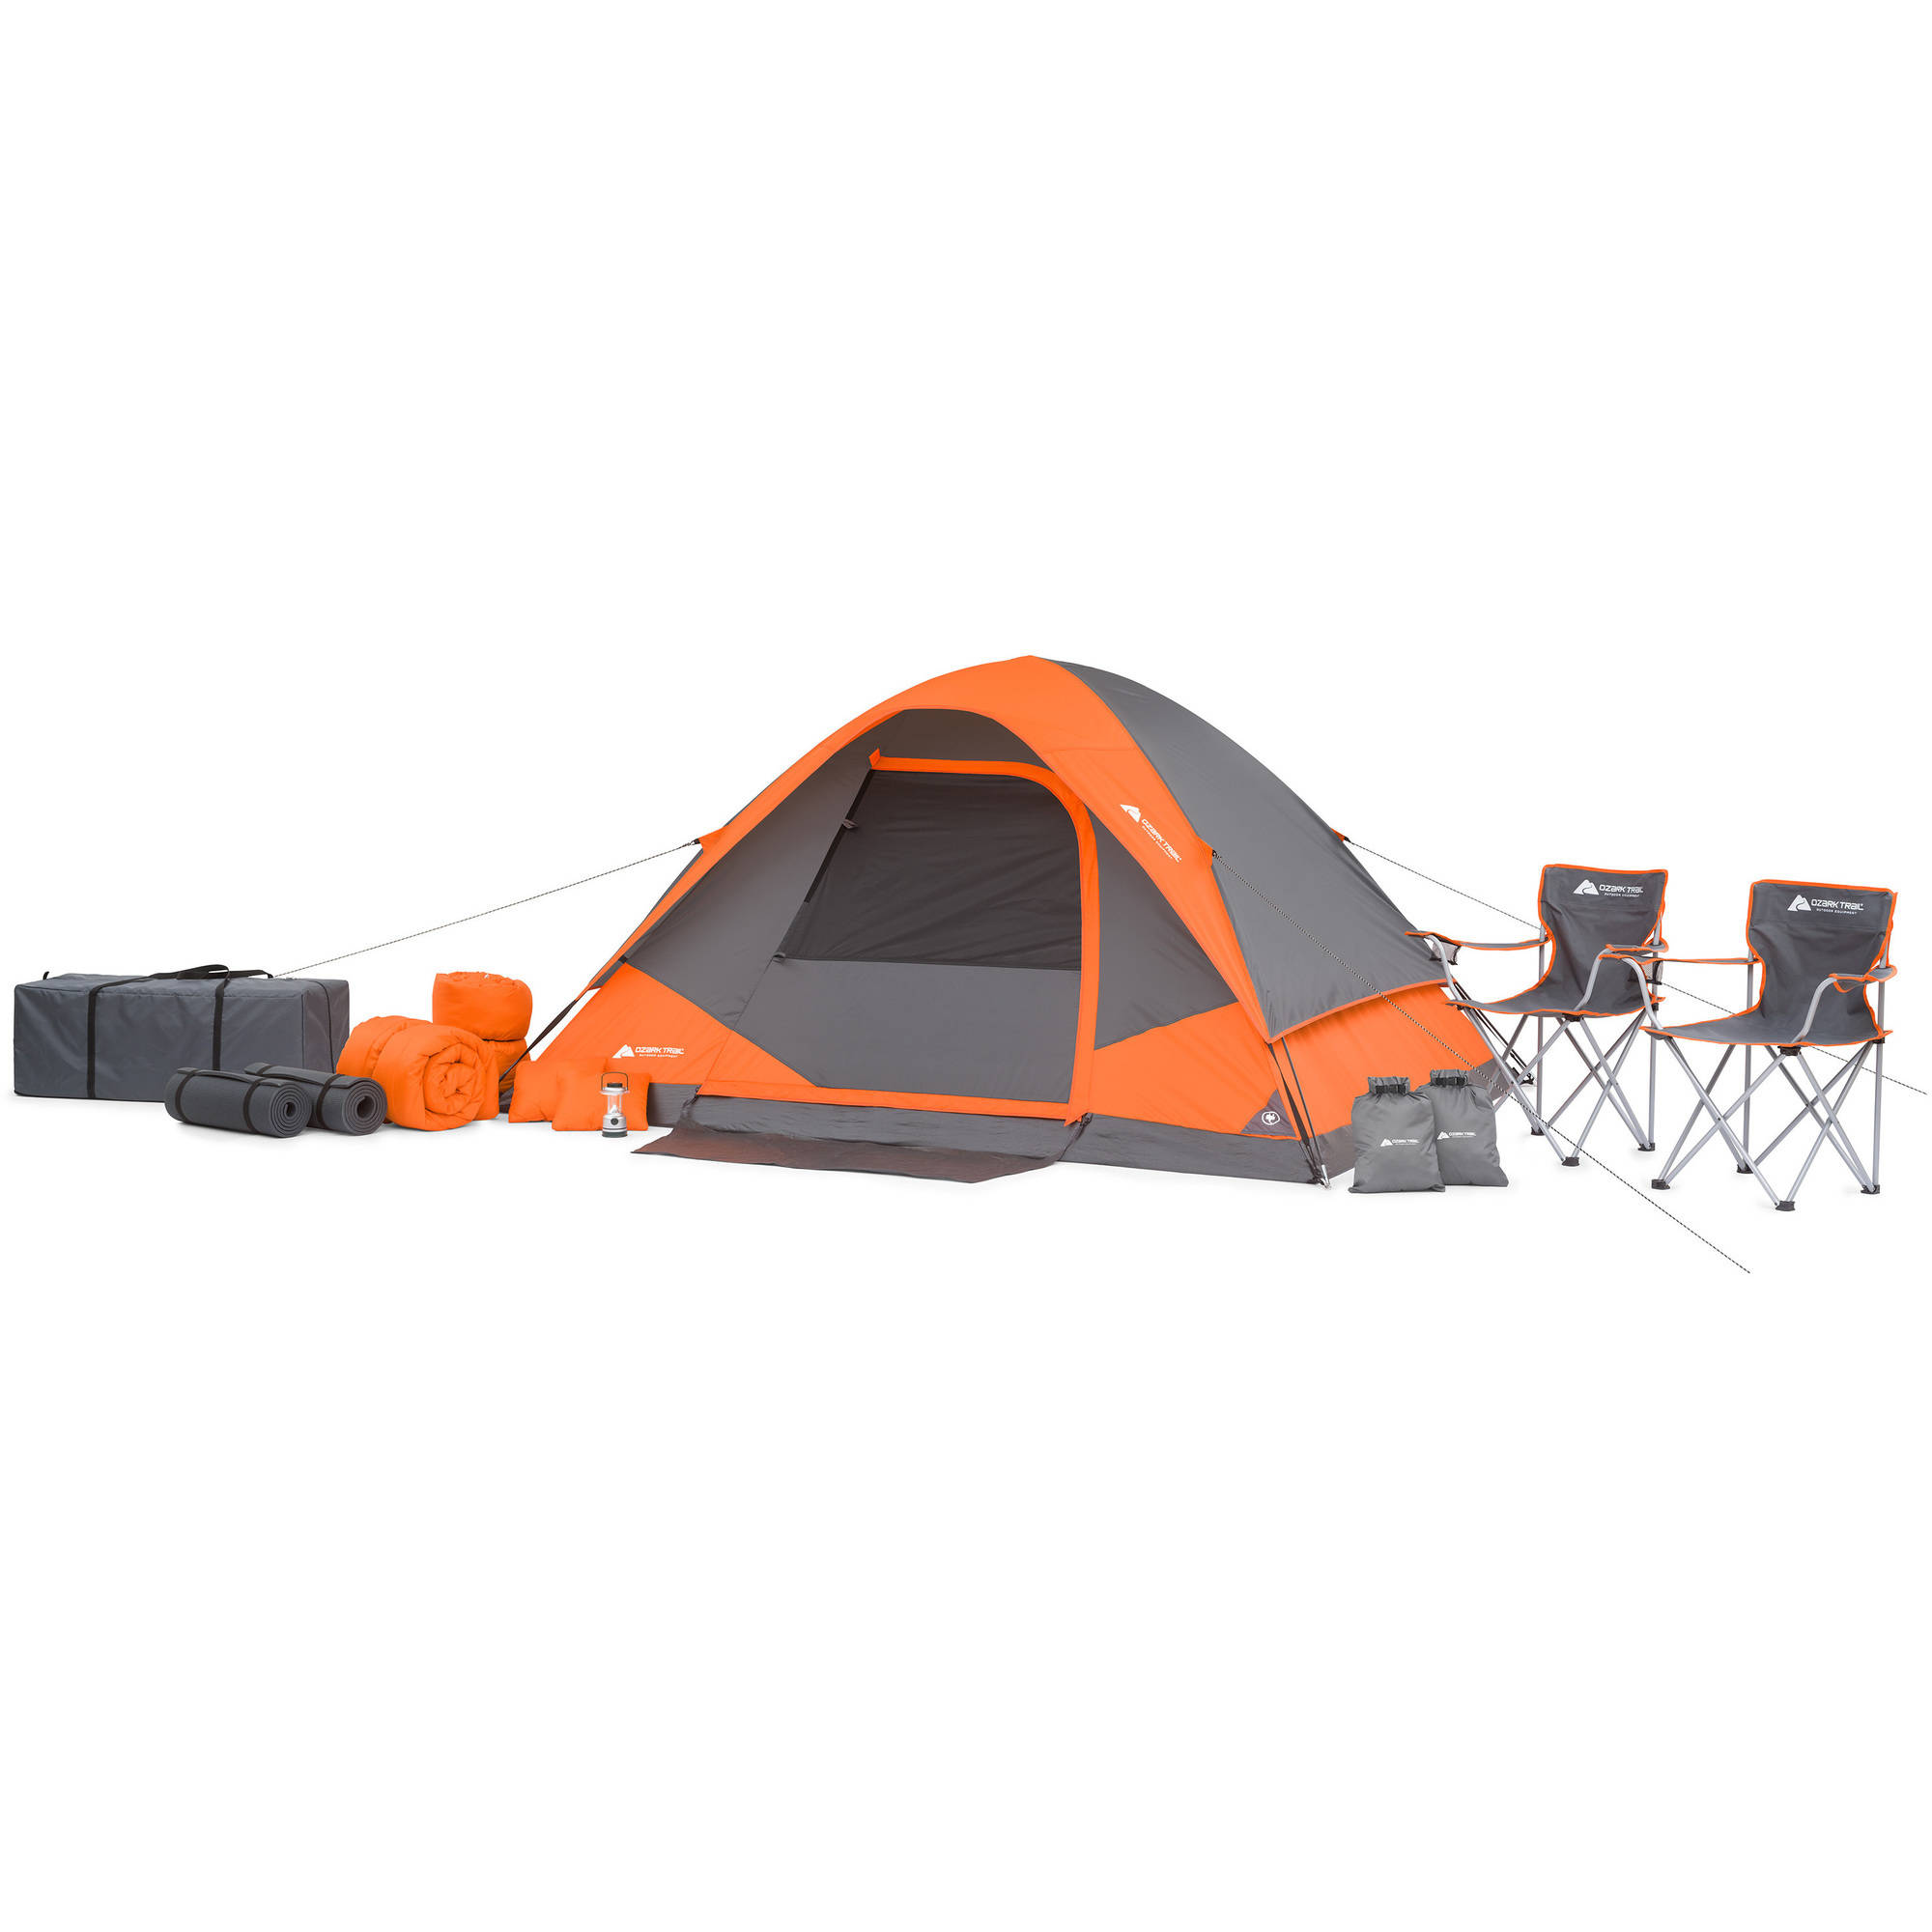 Get the 22pc Ozark Camping Set...